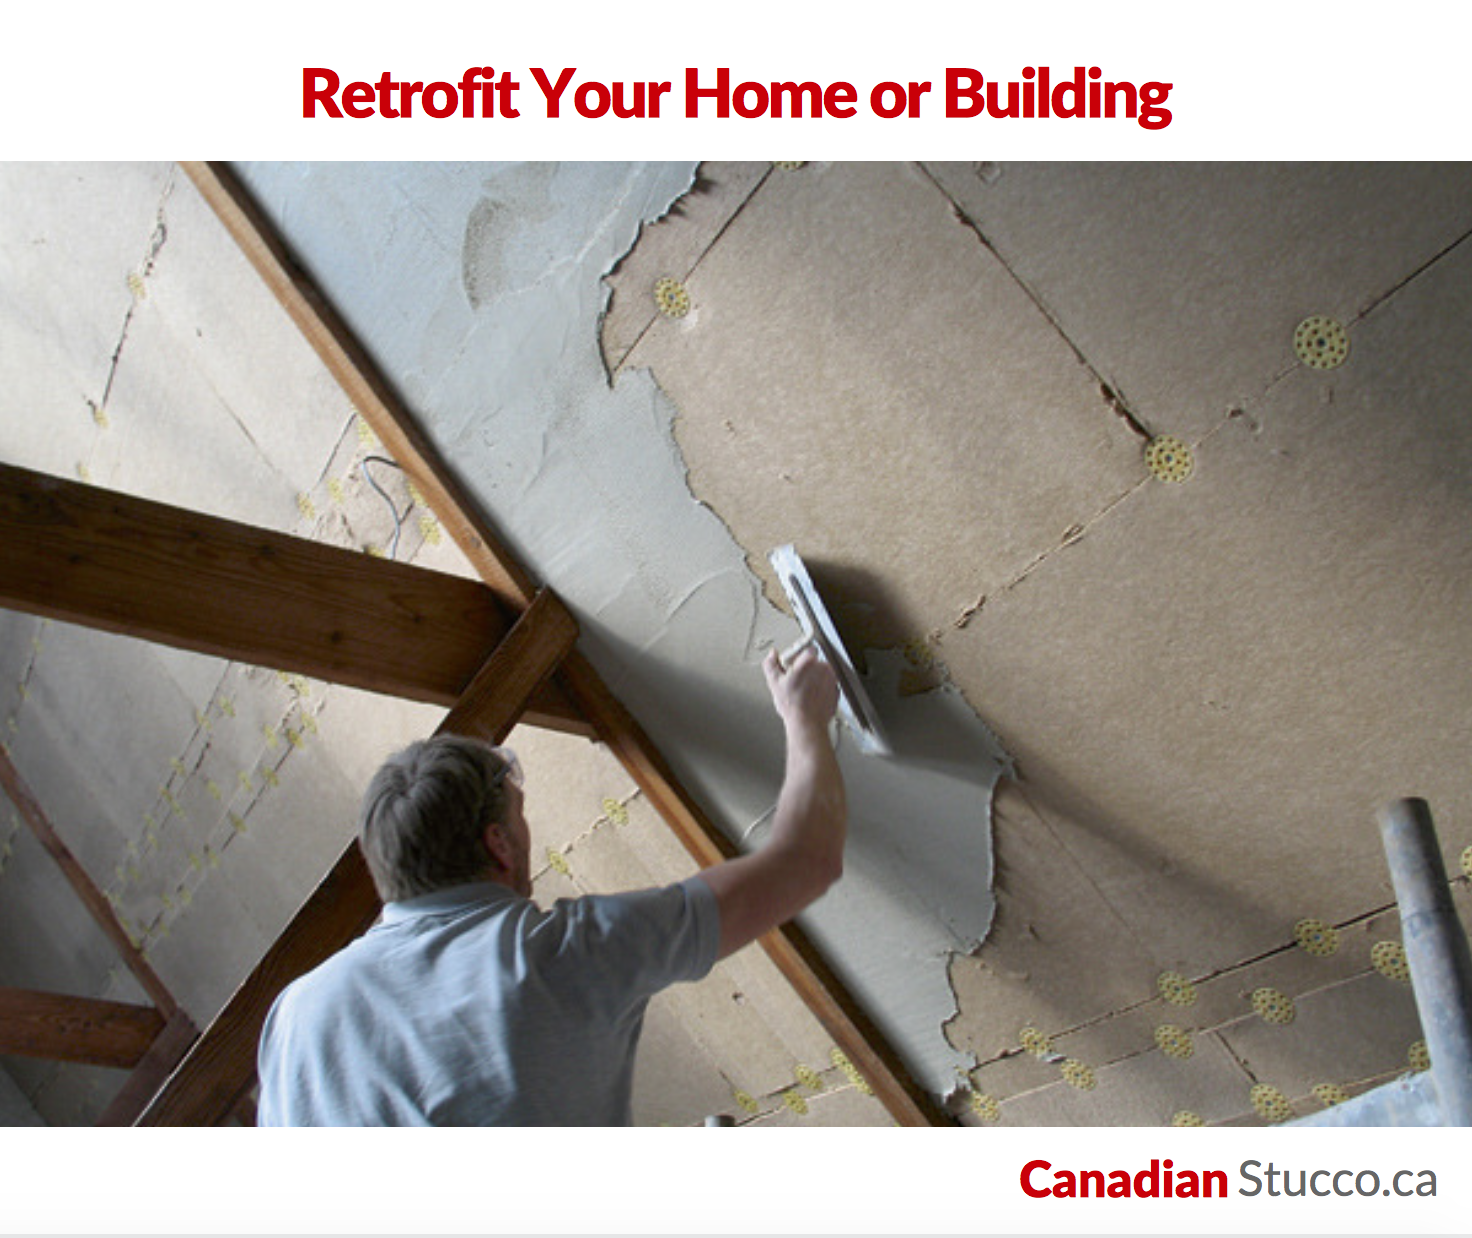 By Definition, Retrofitting Is The Act Of Adding, Or